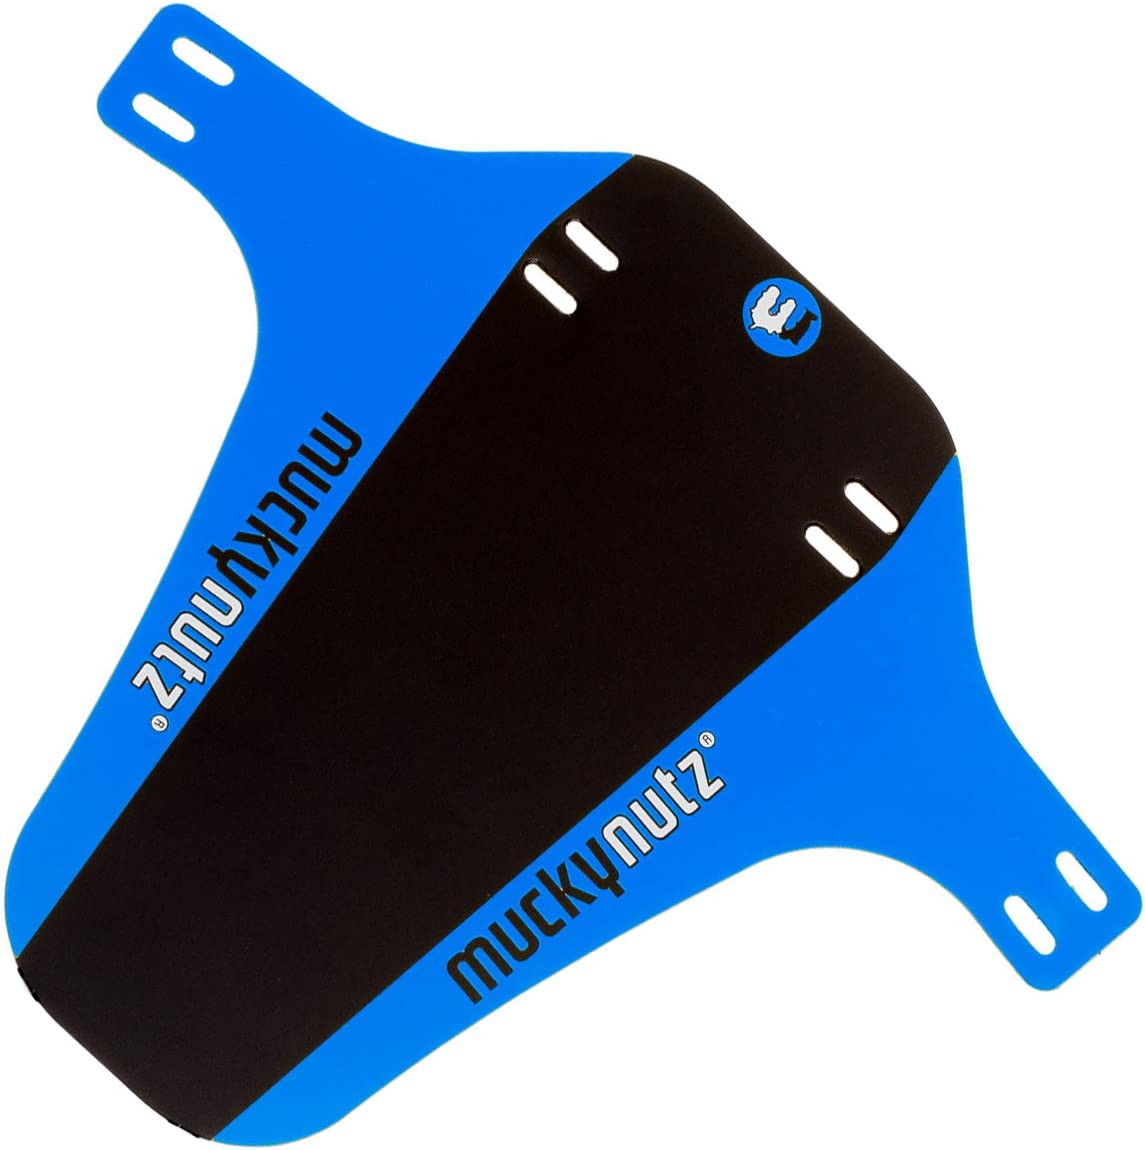 Mucky Nutz Face Fender Reflective Mountain Bike Mudguard